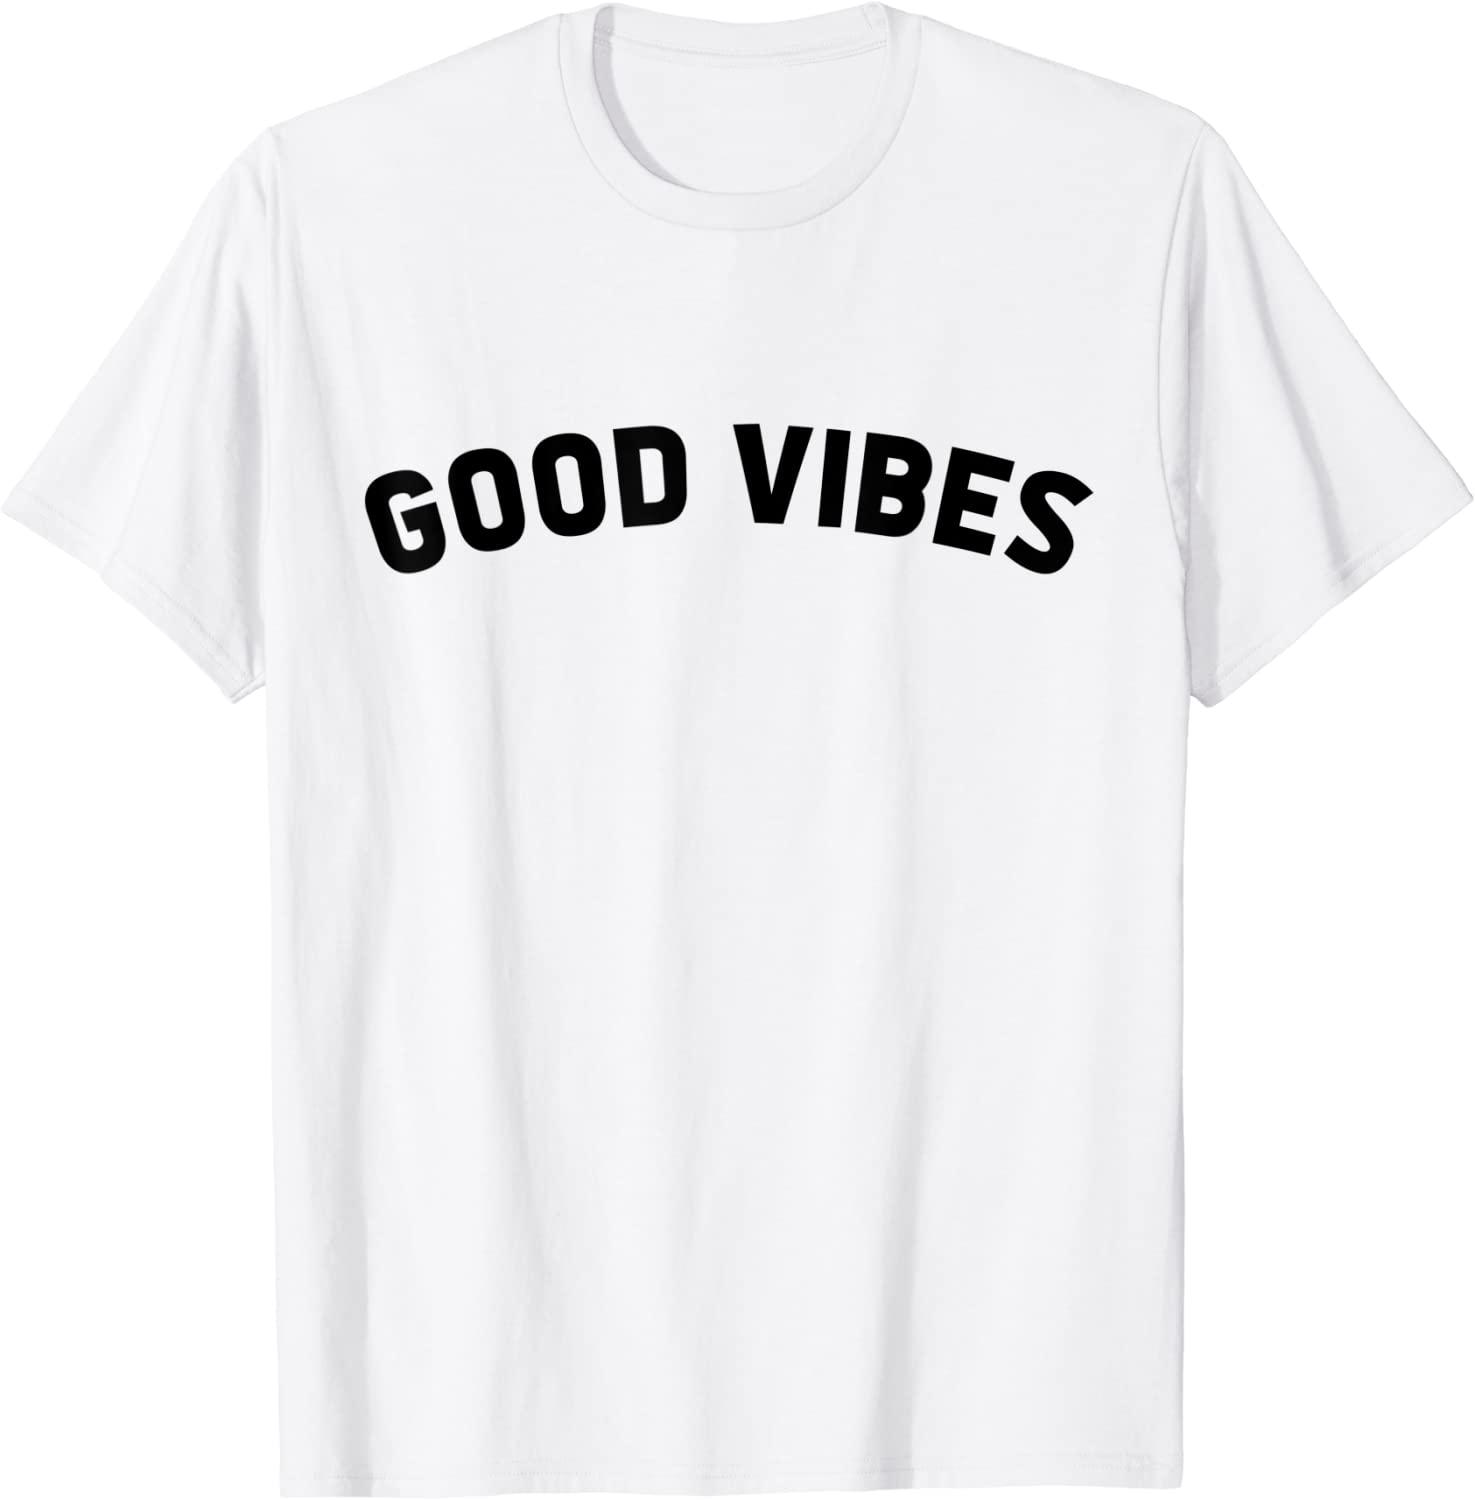 Virginia Beach Mall Good Vibes T-Shirt Spring new work one after another